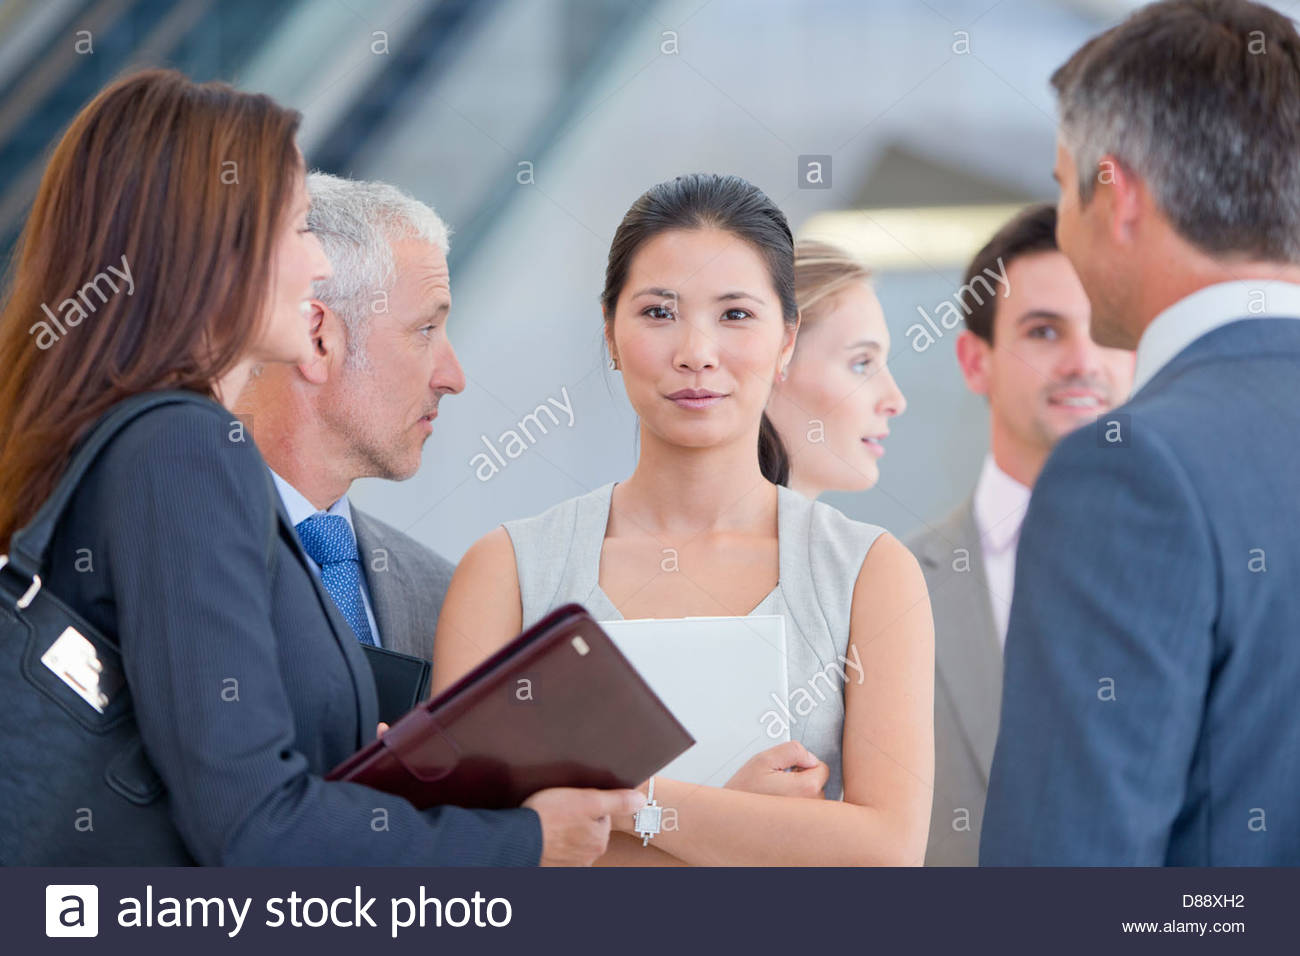 Portrait of confident businesswoman among co-workers - Stock Image